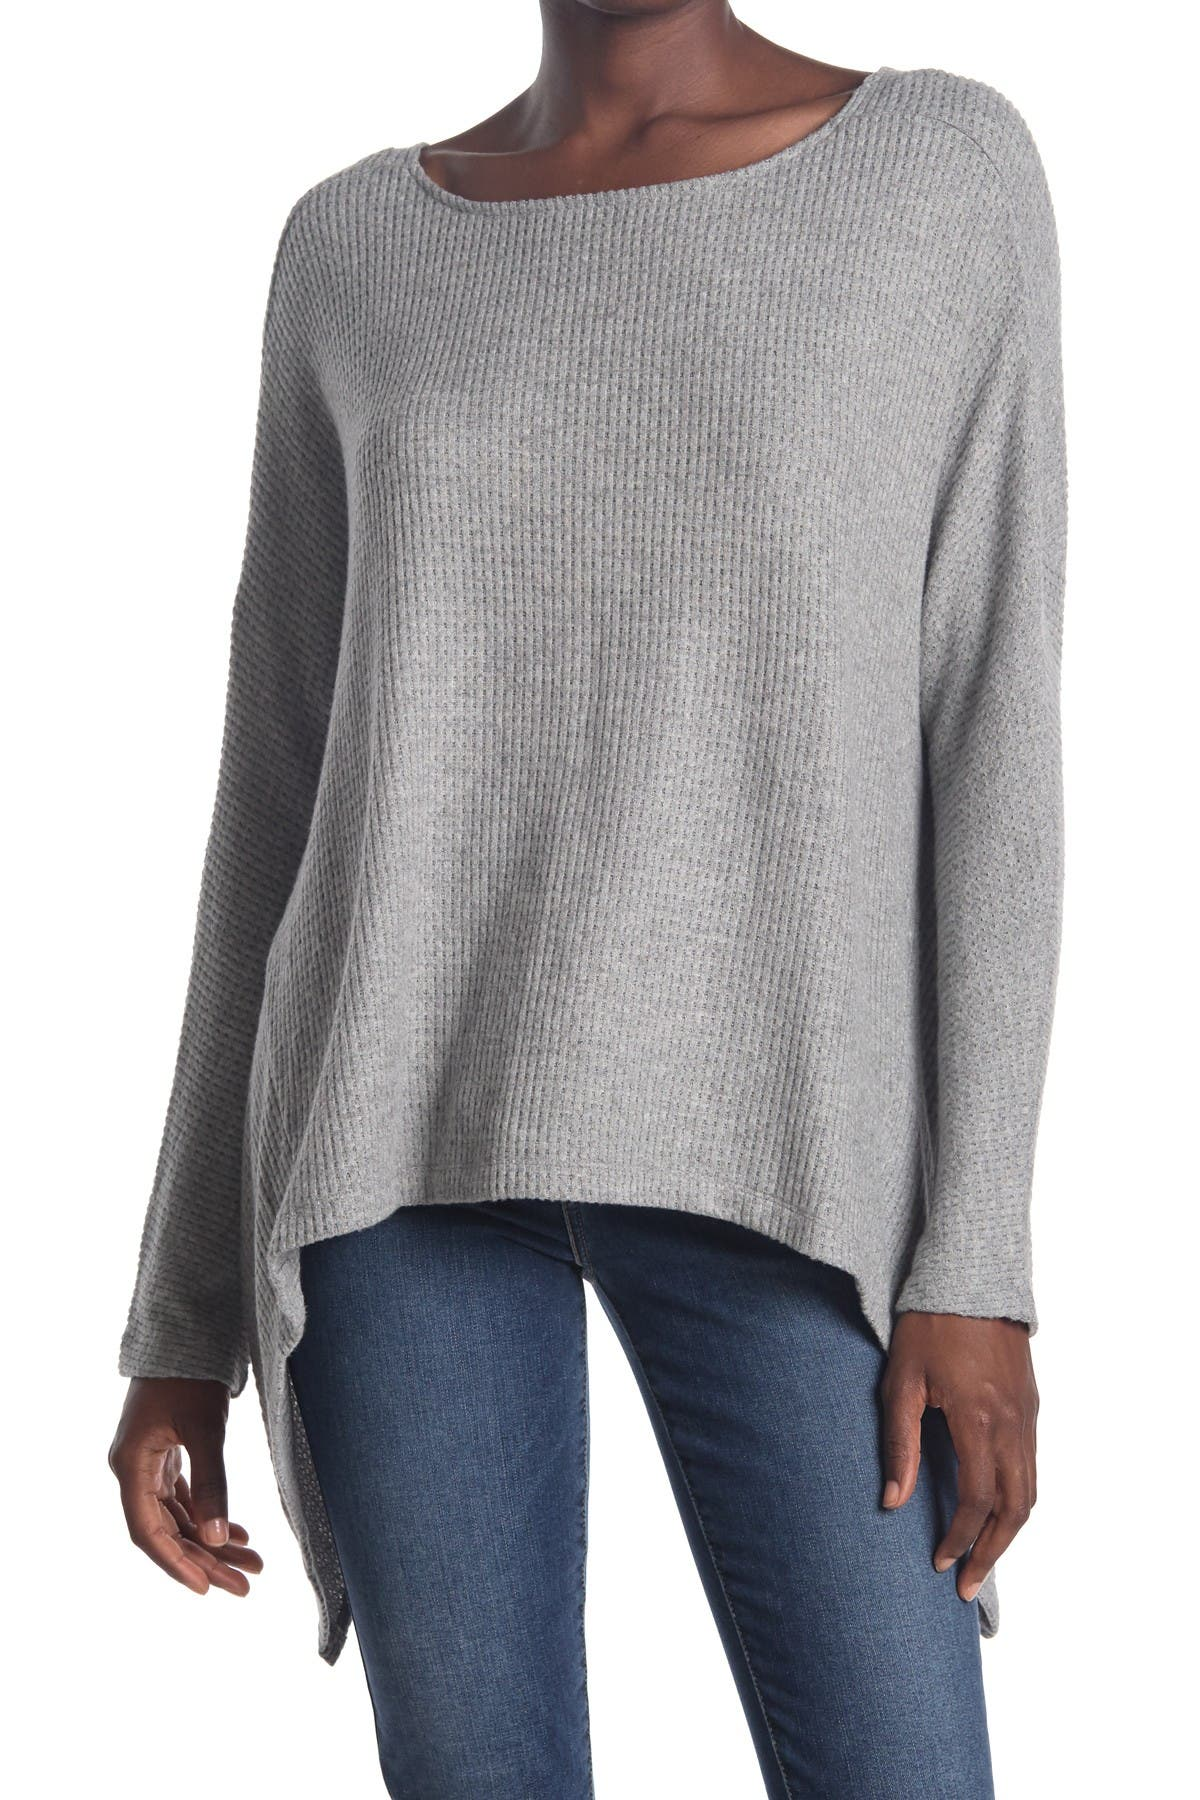 Image of 1.State Cozy Twist Back Waffle Knit Top